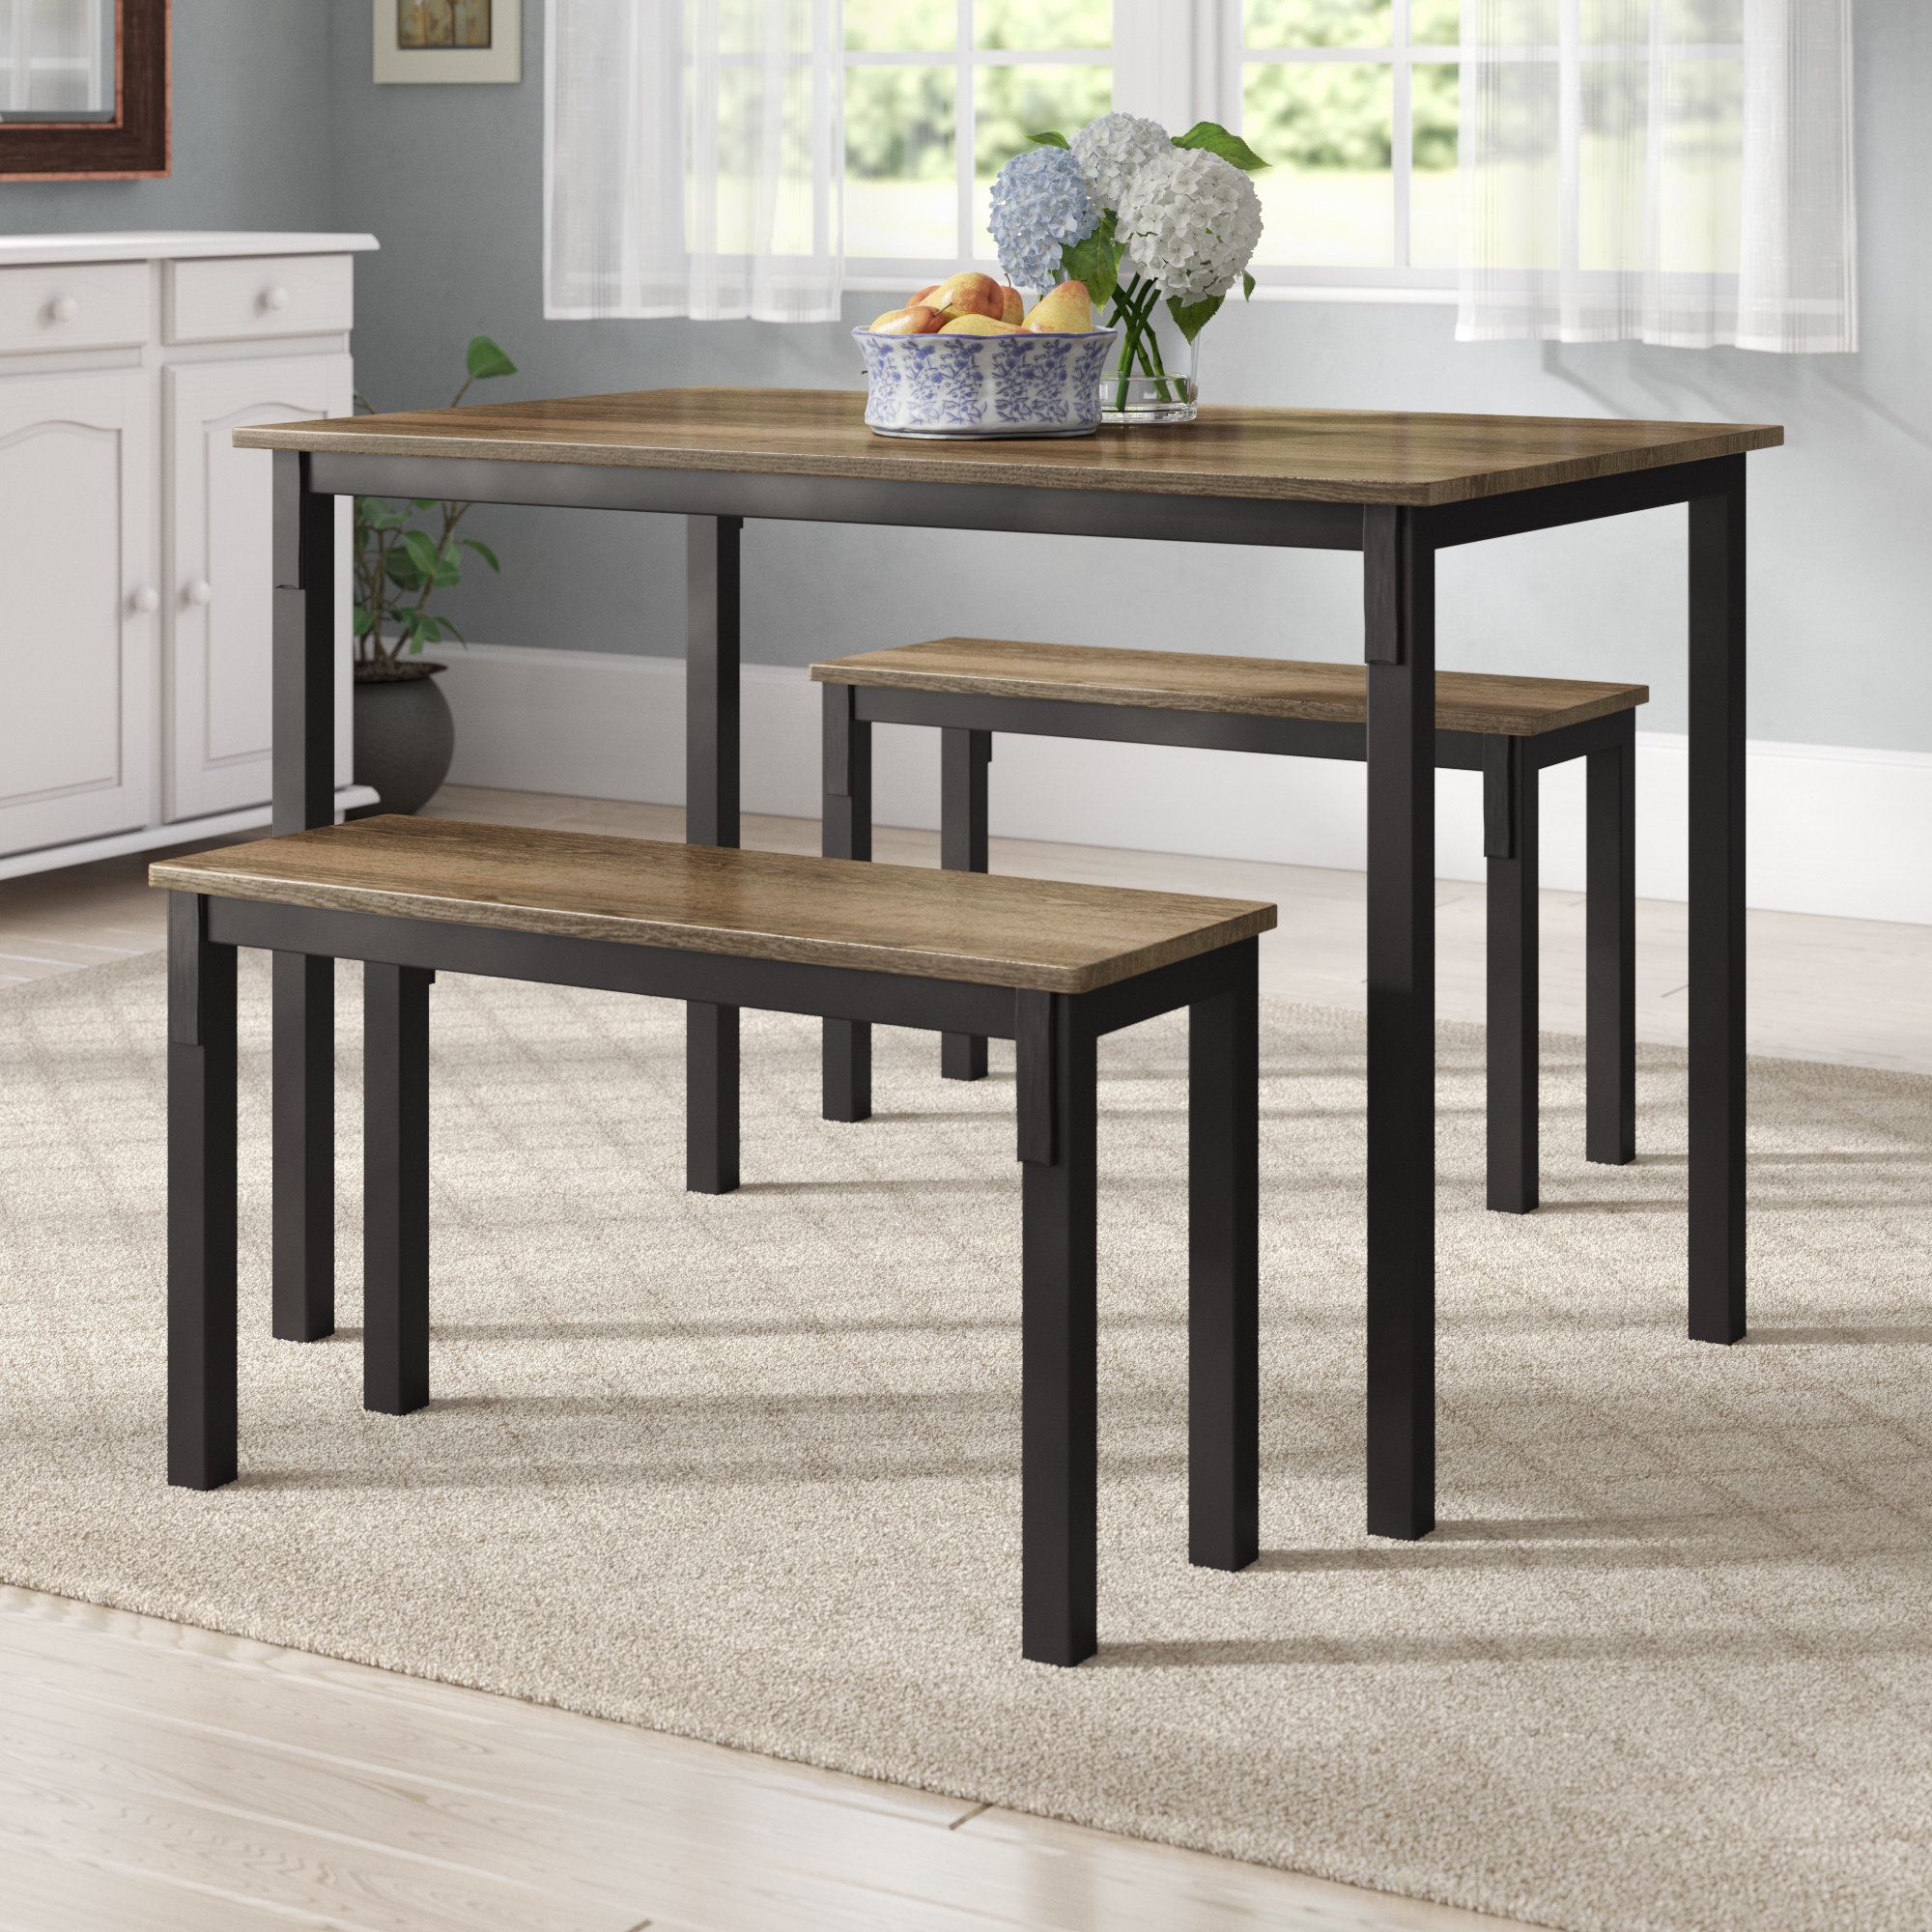 Current Rossiter 3 Piece Dining Set Throughout Ryker 3 Piece Dining Sets (Gallery 6 of 20)